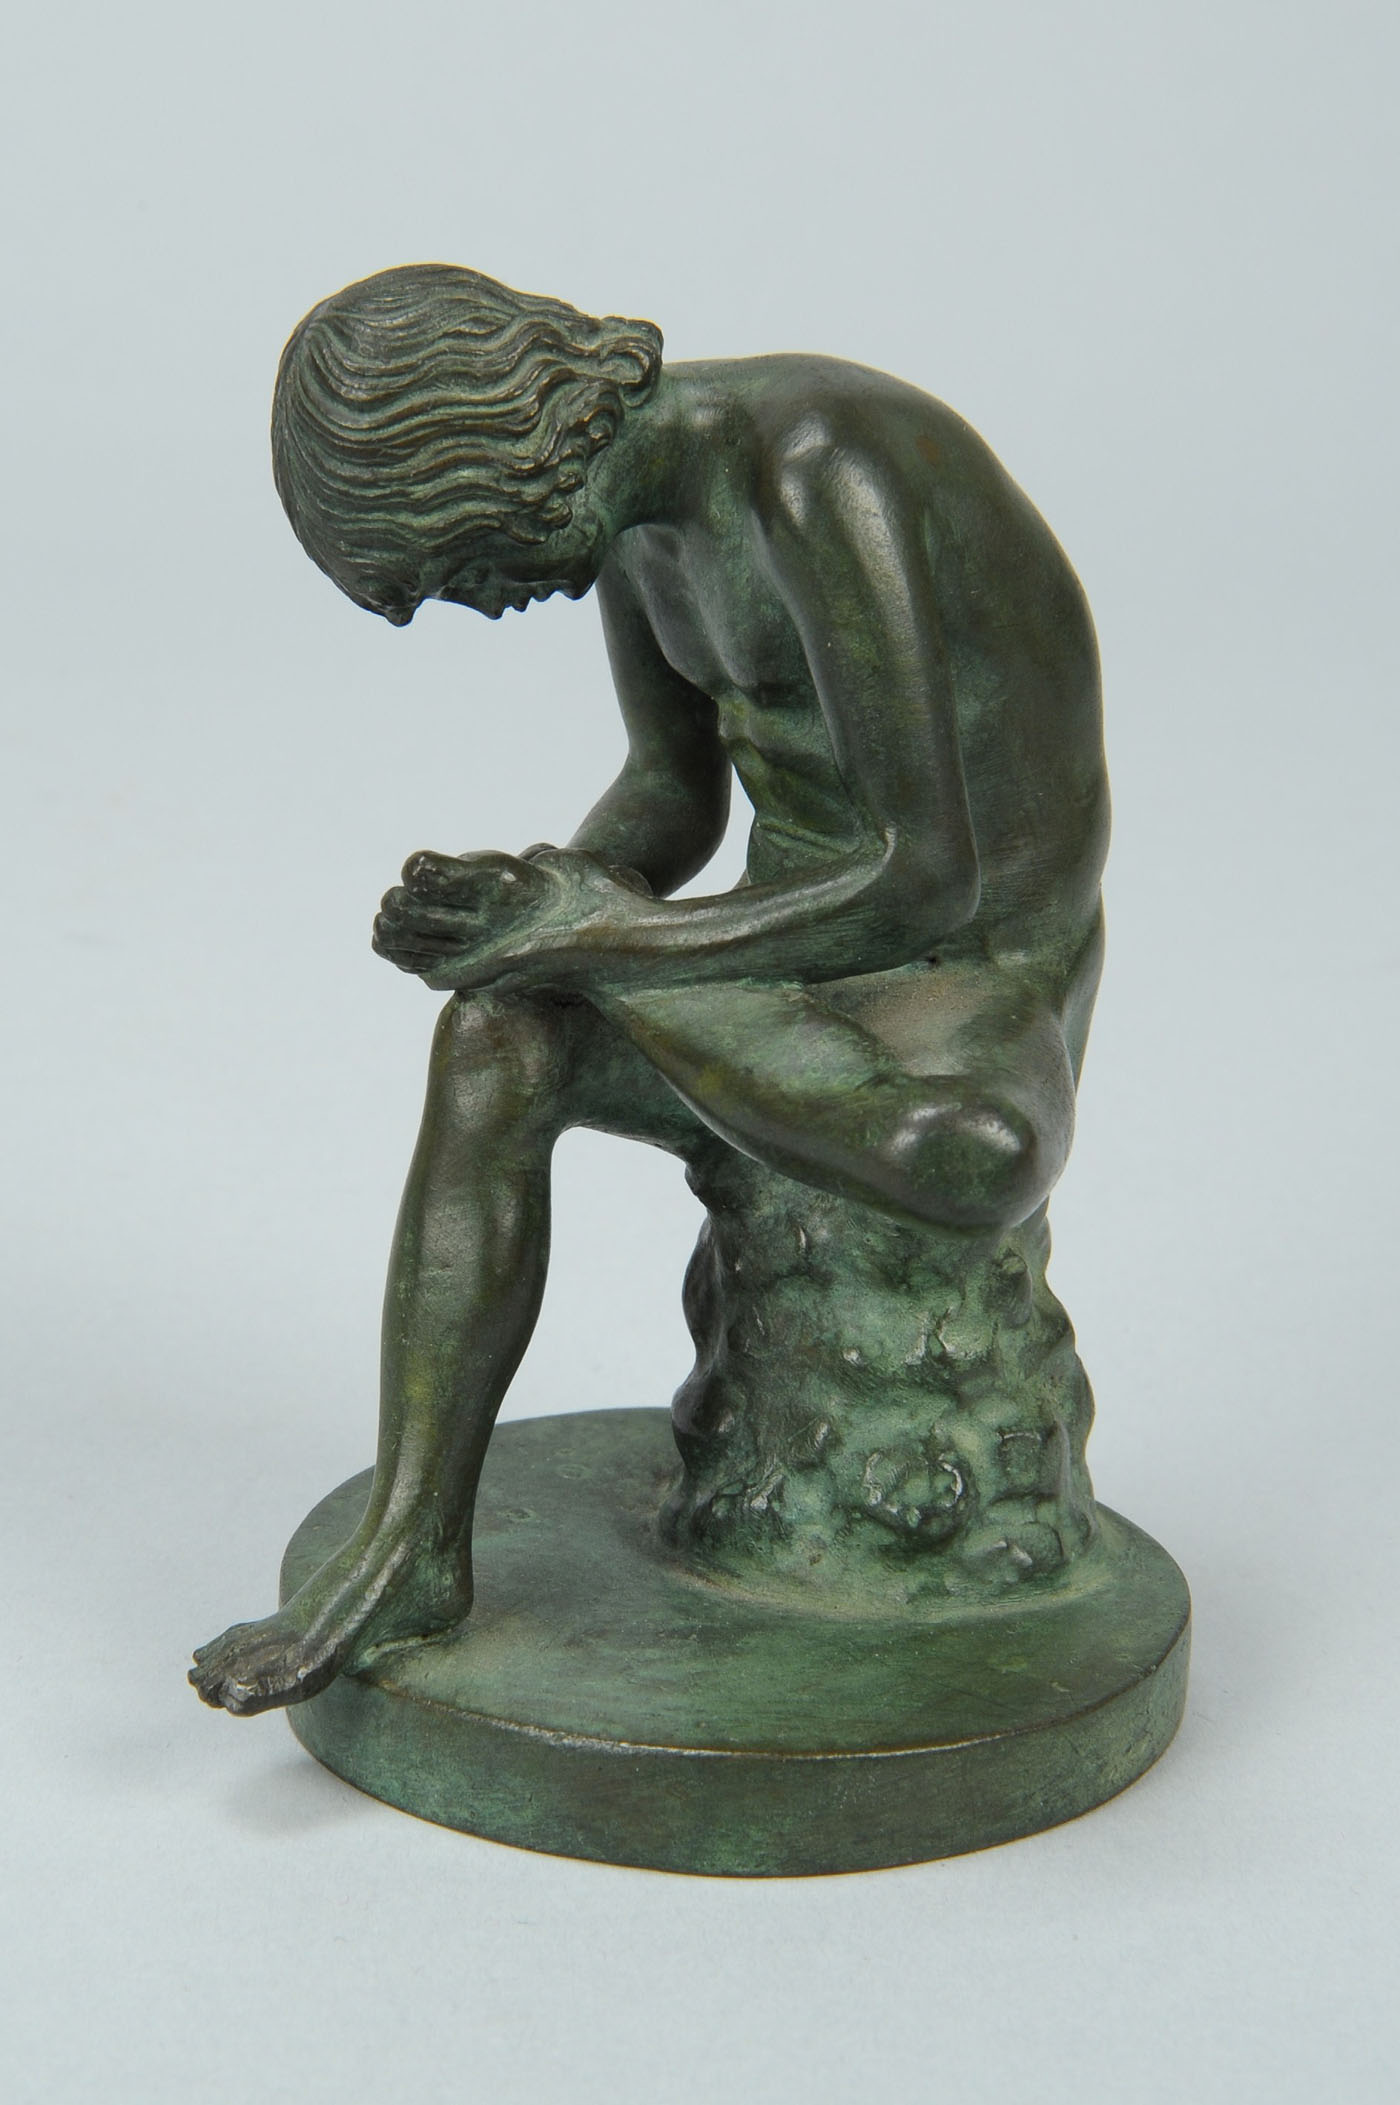 Lot 767: Two Small Sculptures, including Spinario